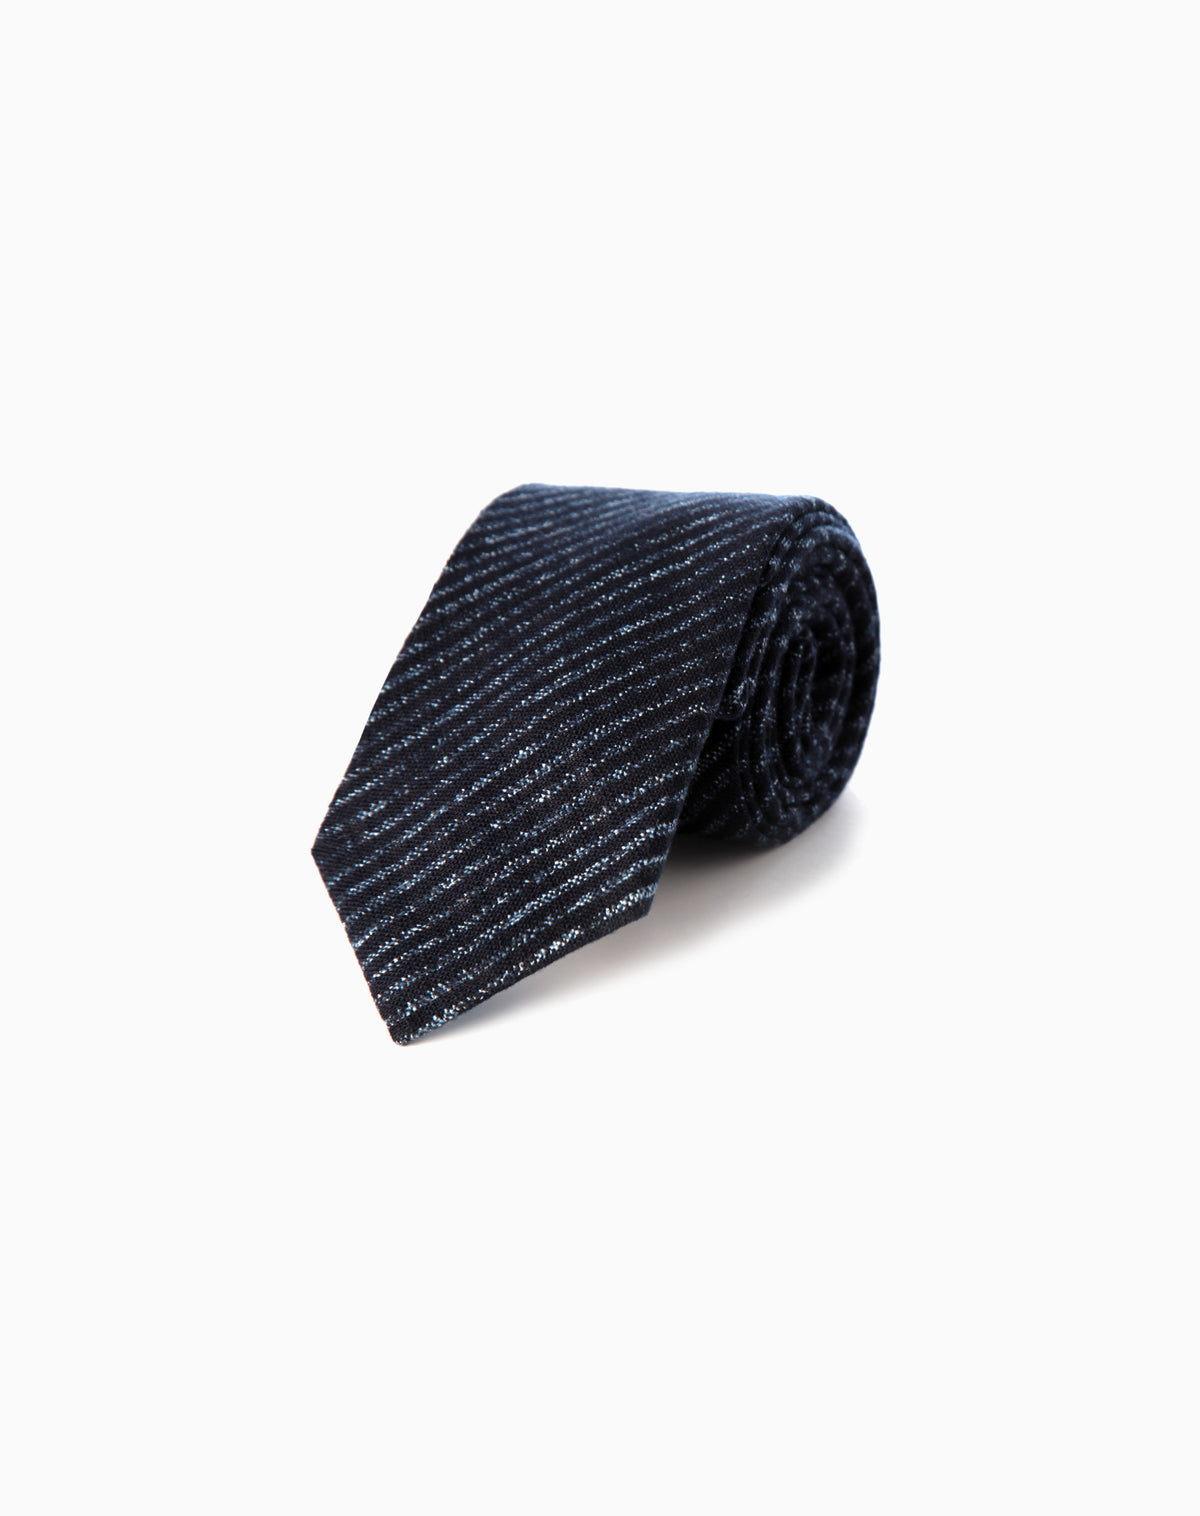 Tie in Diagonal Stripe